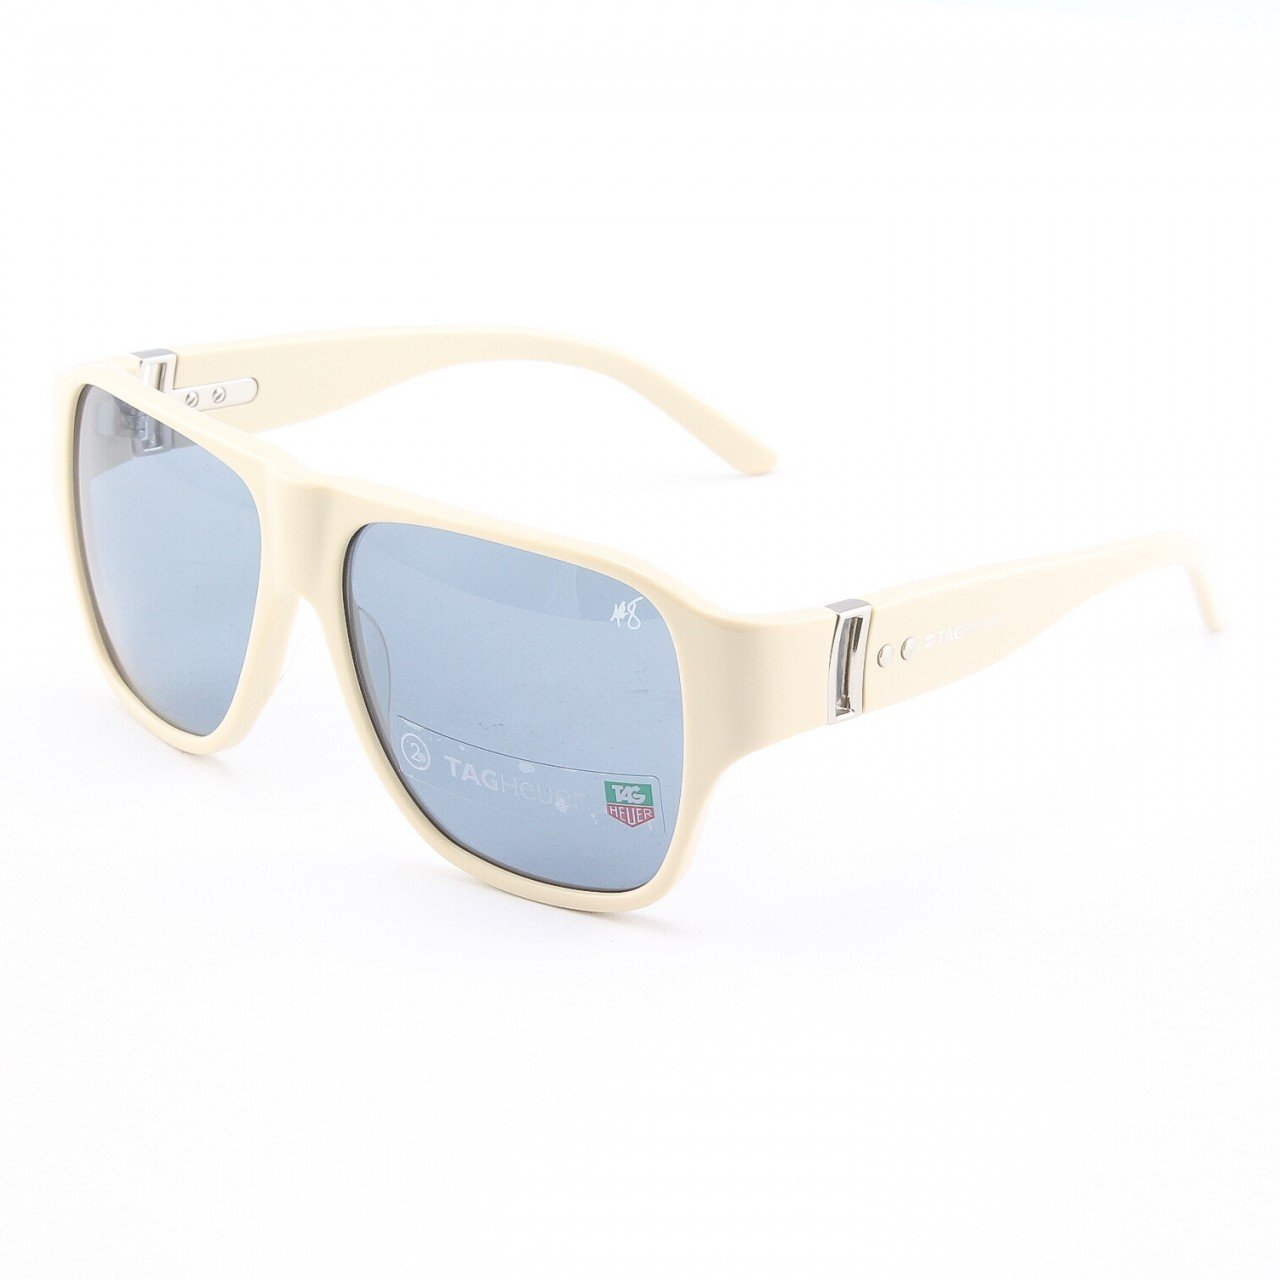 TAG Heuer 9100 Women's Sunglasses Col. 103 Ivory with Blue Lenses